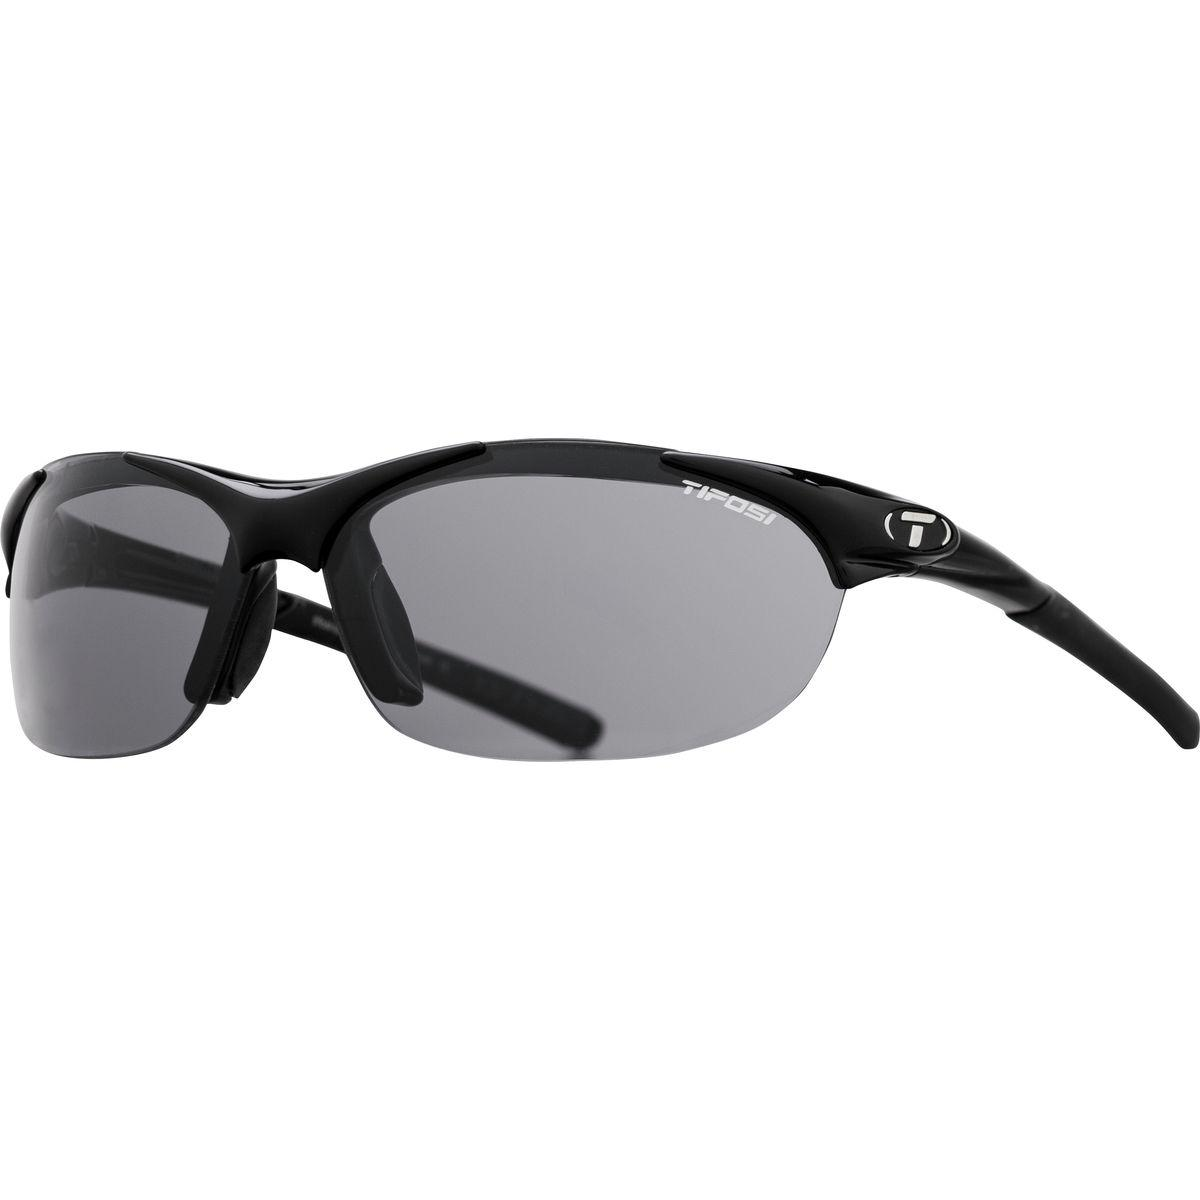 93175cc4801 Lyst - Tifosi Optics Wisp Photochromic Sunglasses in Black for Men